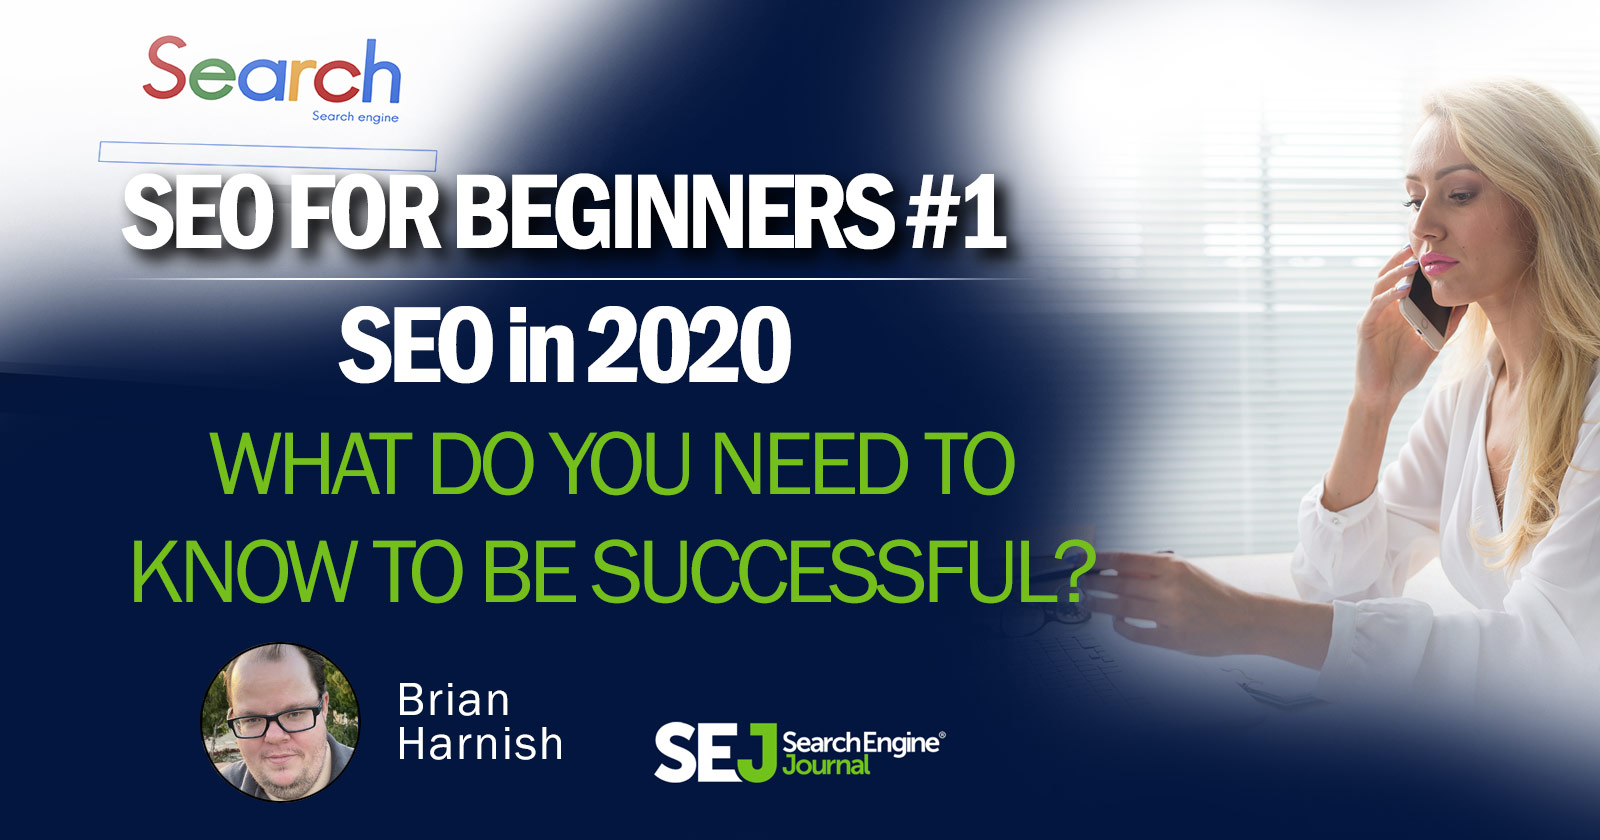 SEO in 2020: What Basics You Need to Know to Be Successful - Search Engine Journal